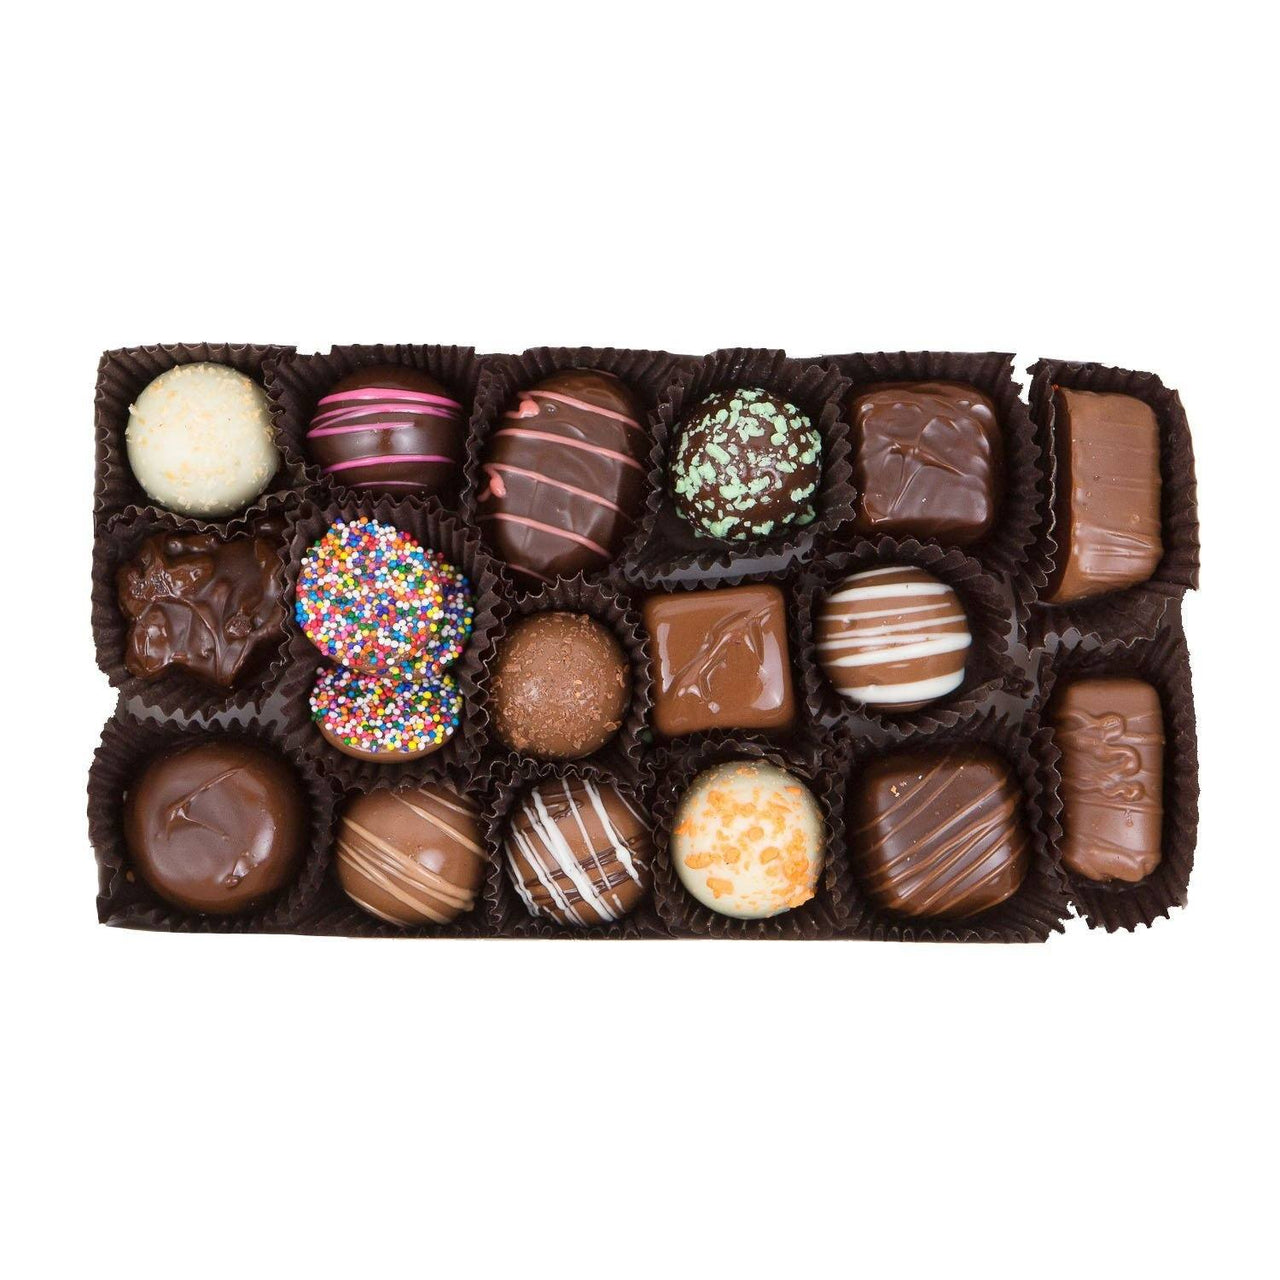 Gifts for Boss - Chocolate Assortment Gift Box - Jackie's Chocolate